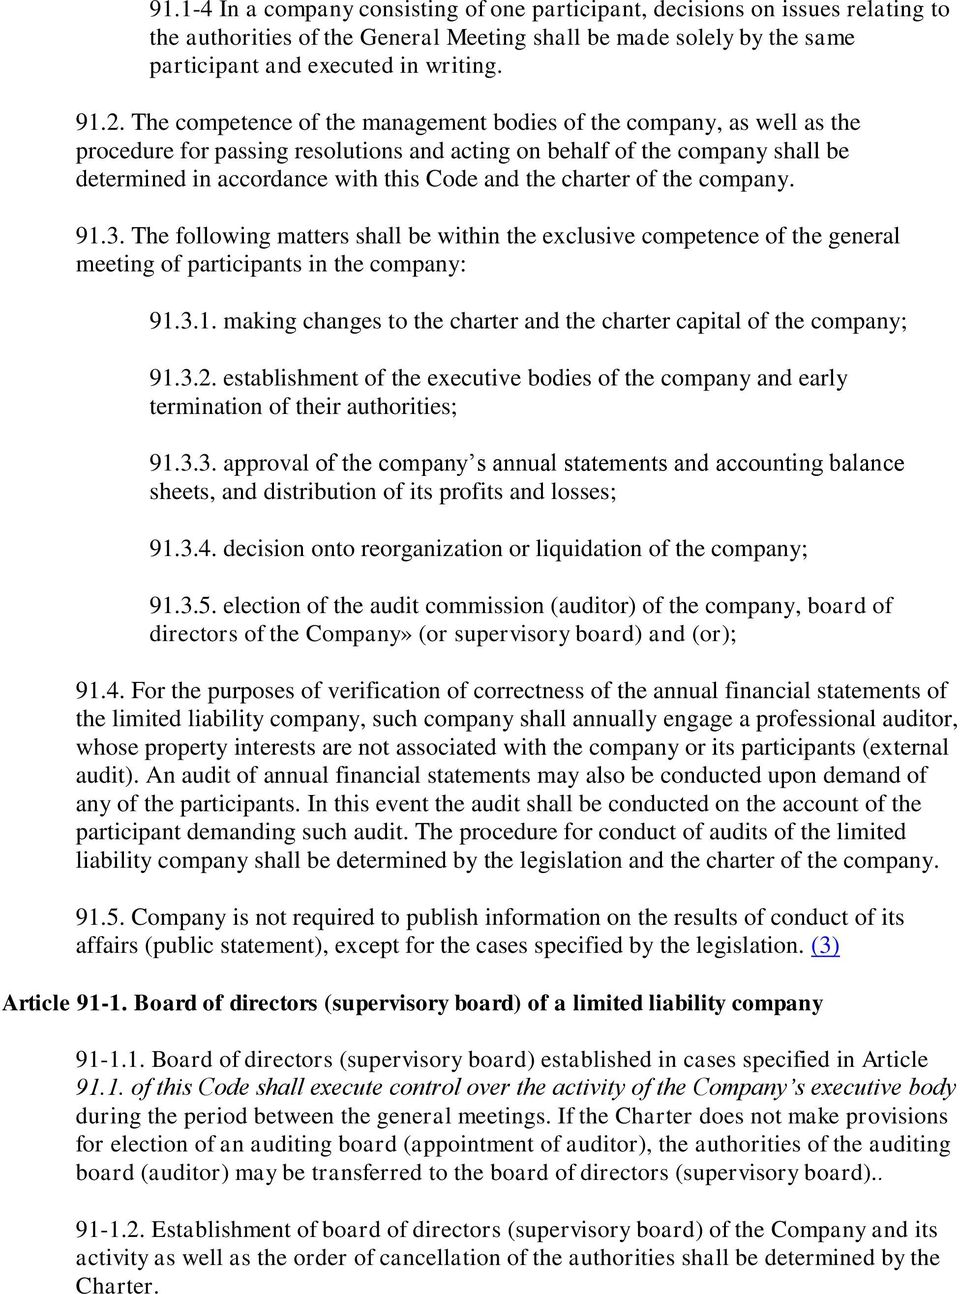 charter of the company. 91.3. The following matters shall be within the exclusive competence of the general meeting of participants in the company: 91.3.1. making changes to the charter and the charter capital of the company; 91.